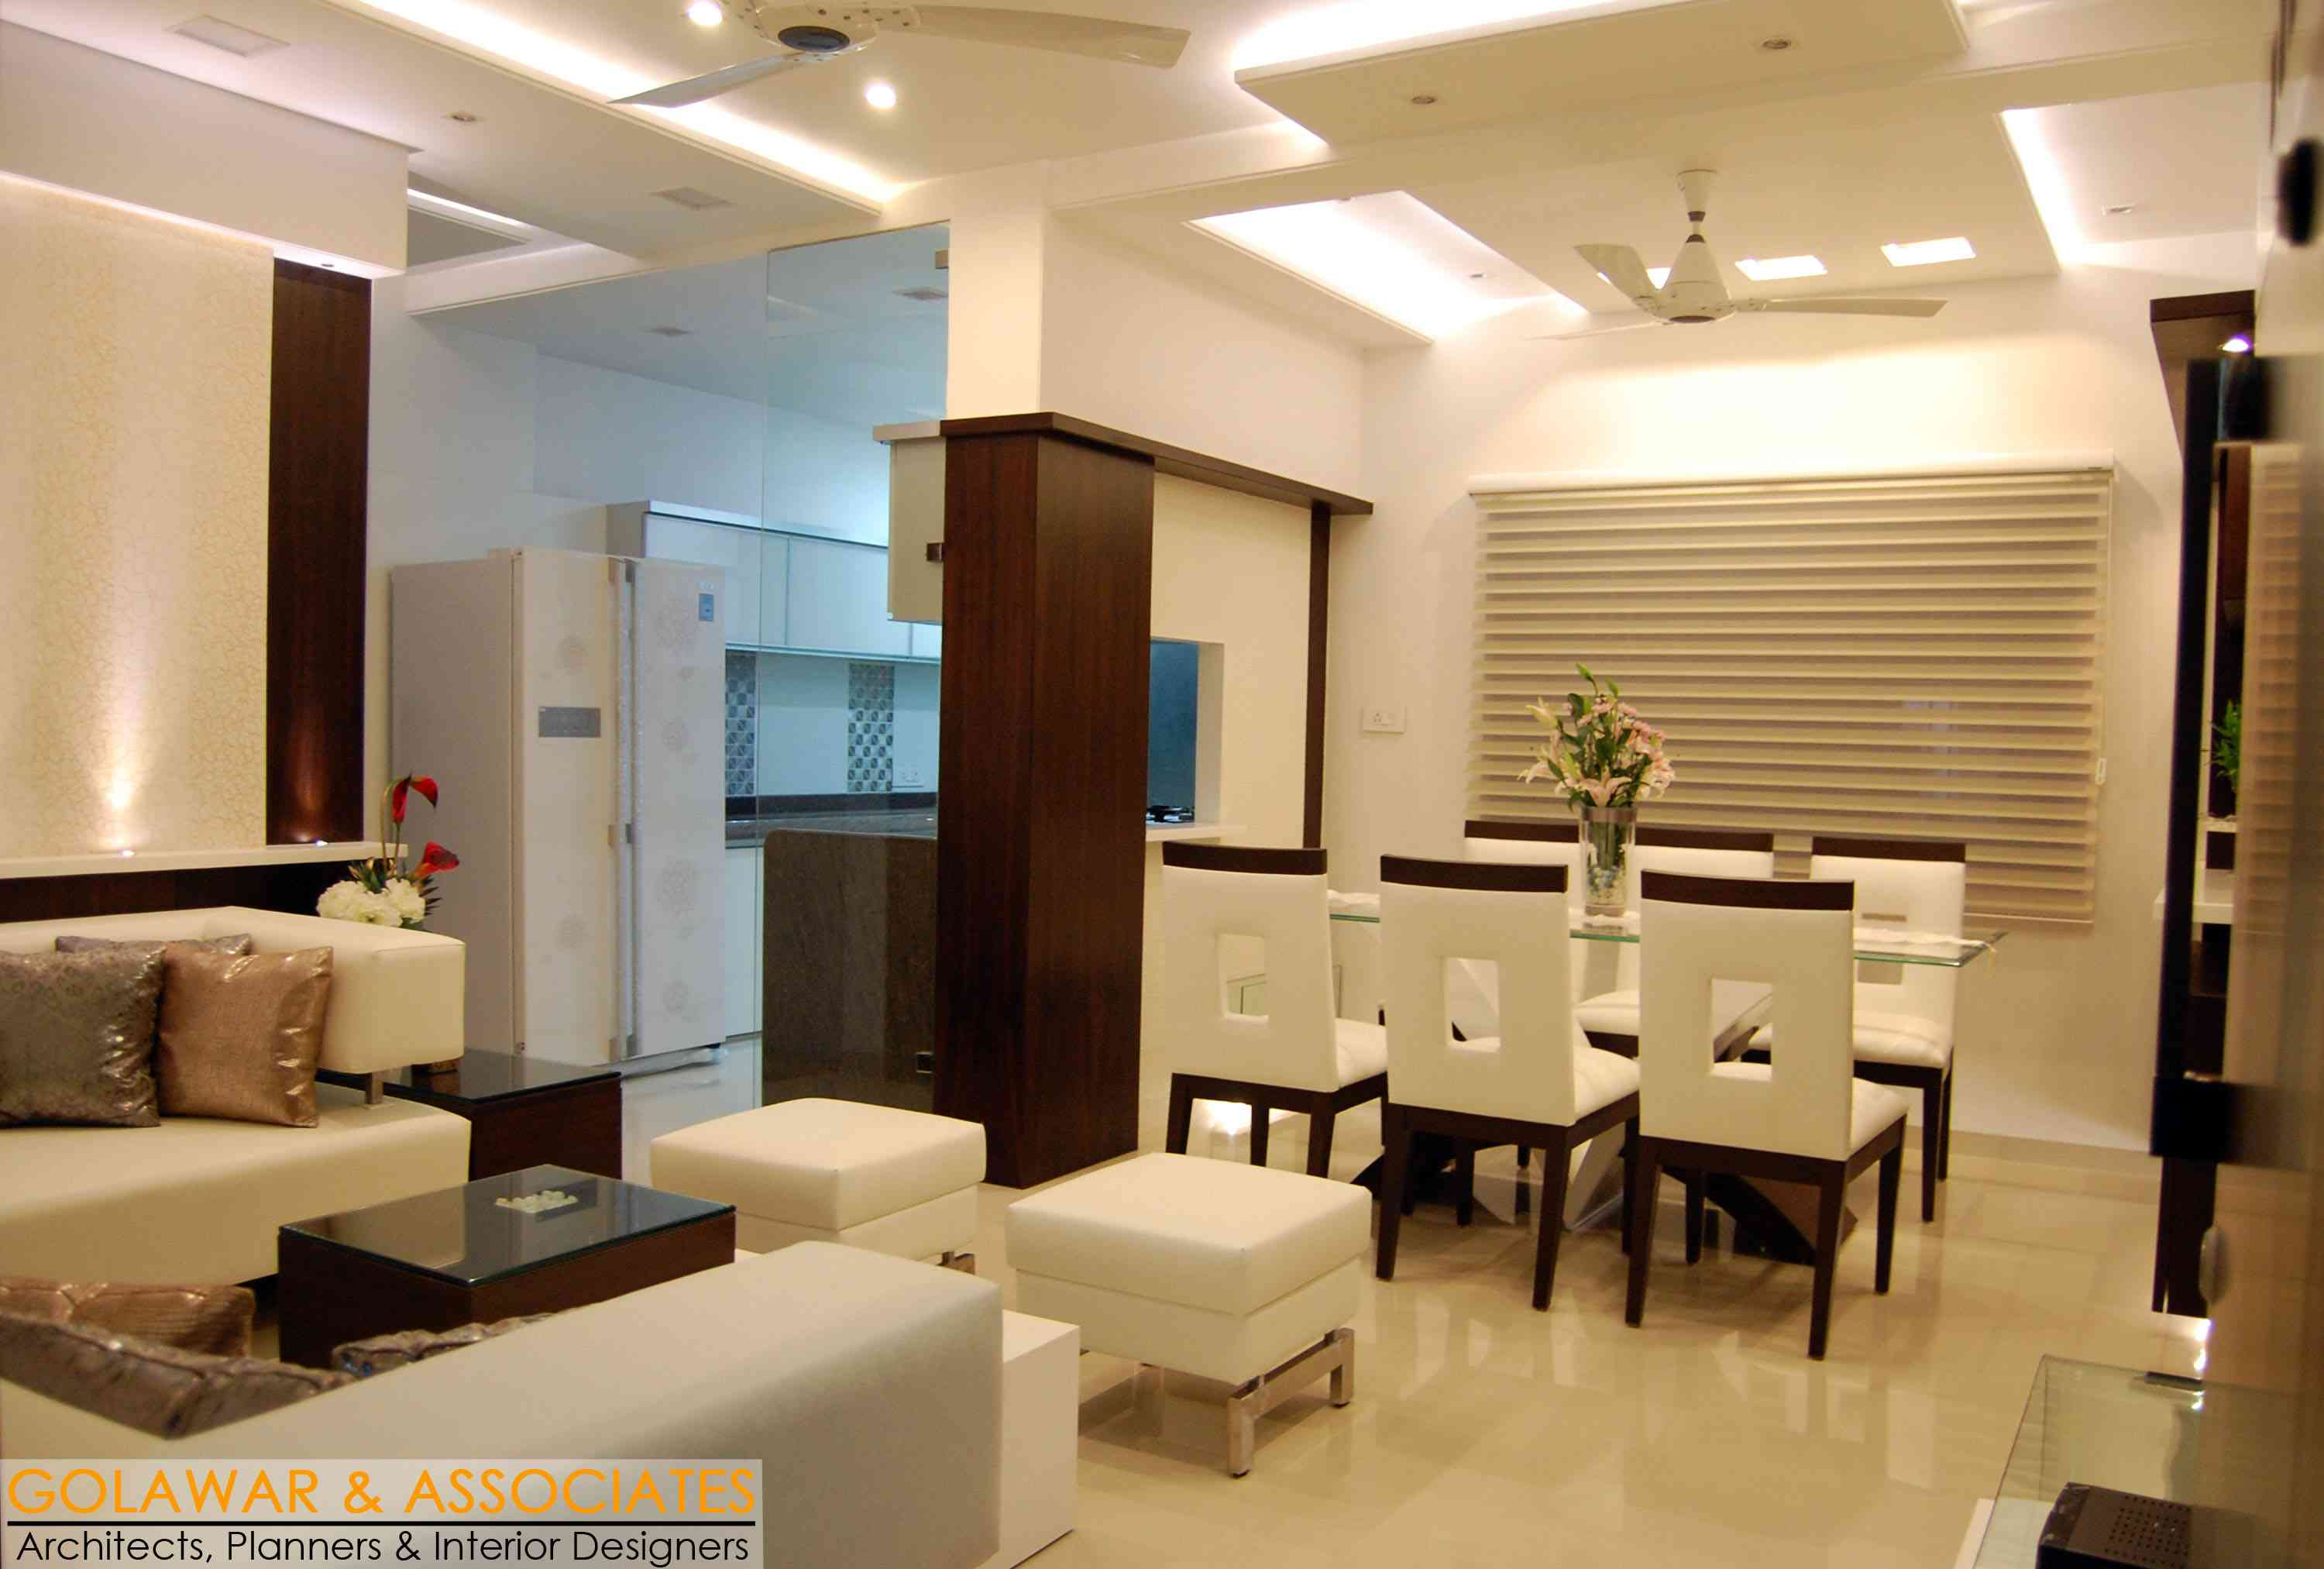 1000 images about dining room designs on pinterest - Dining area ideas ...